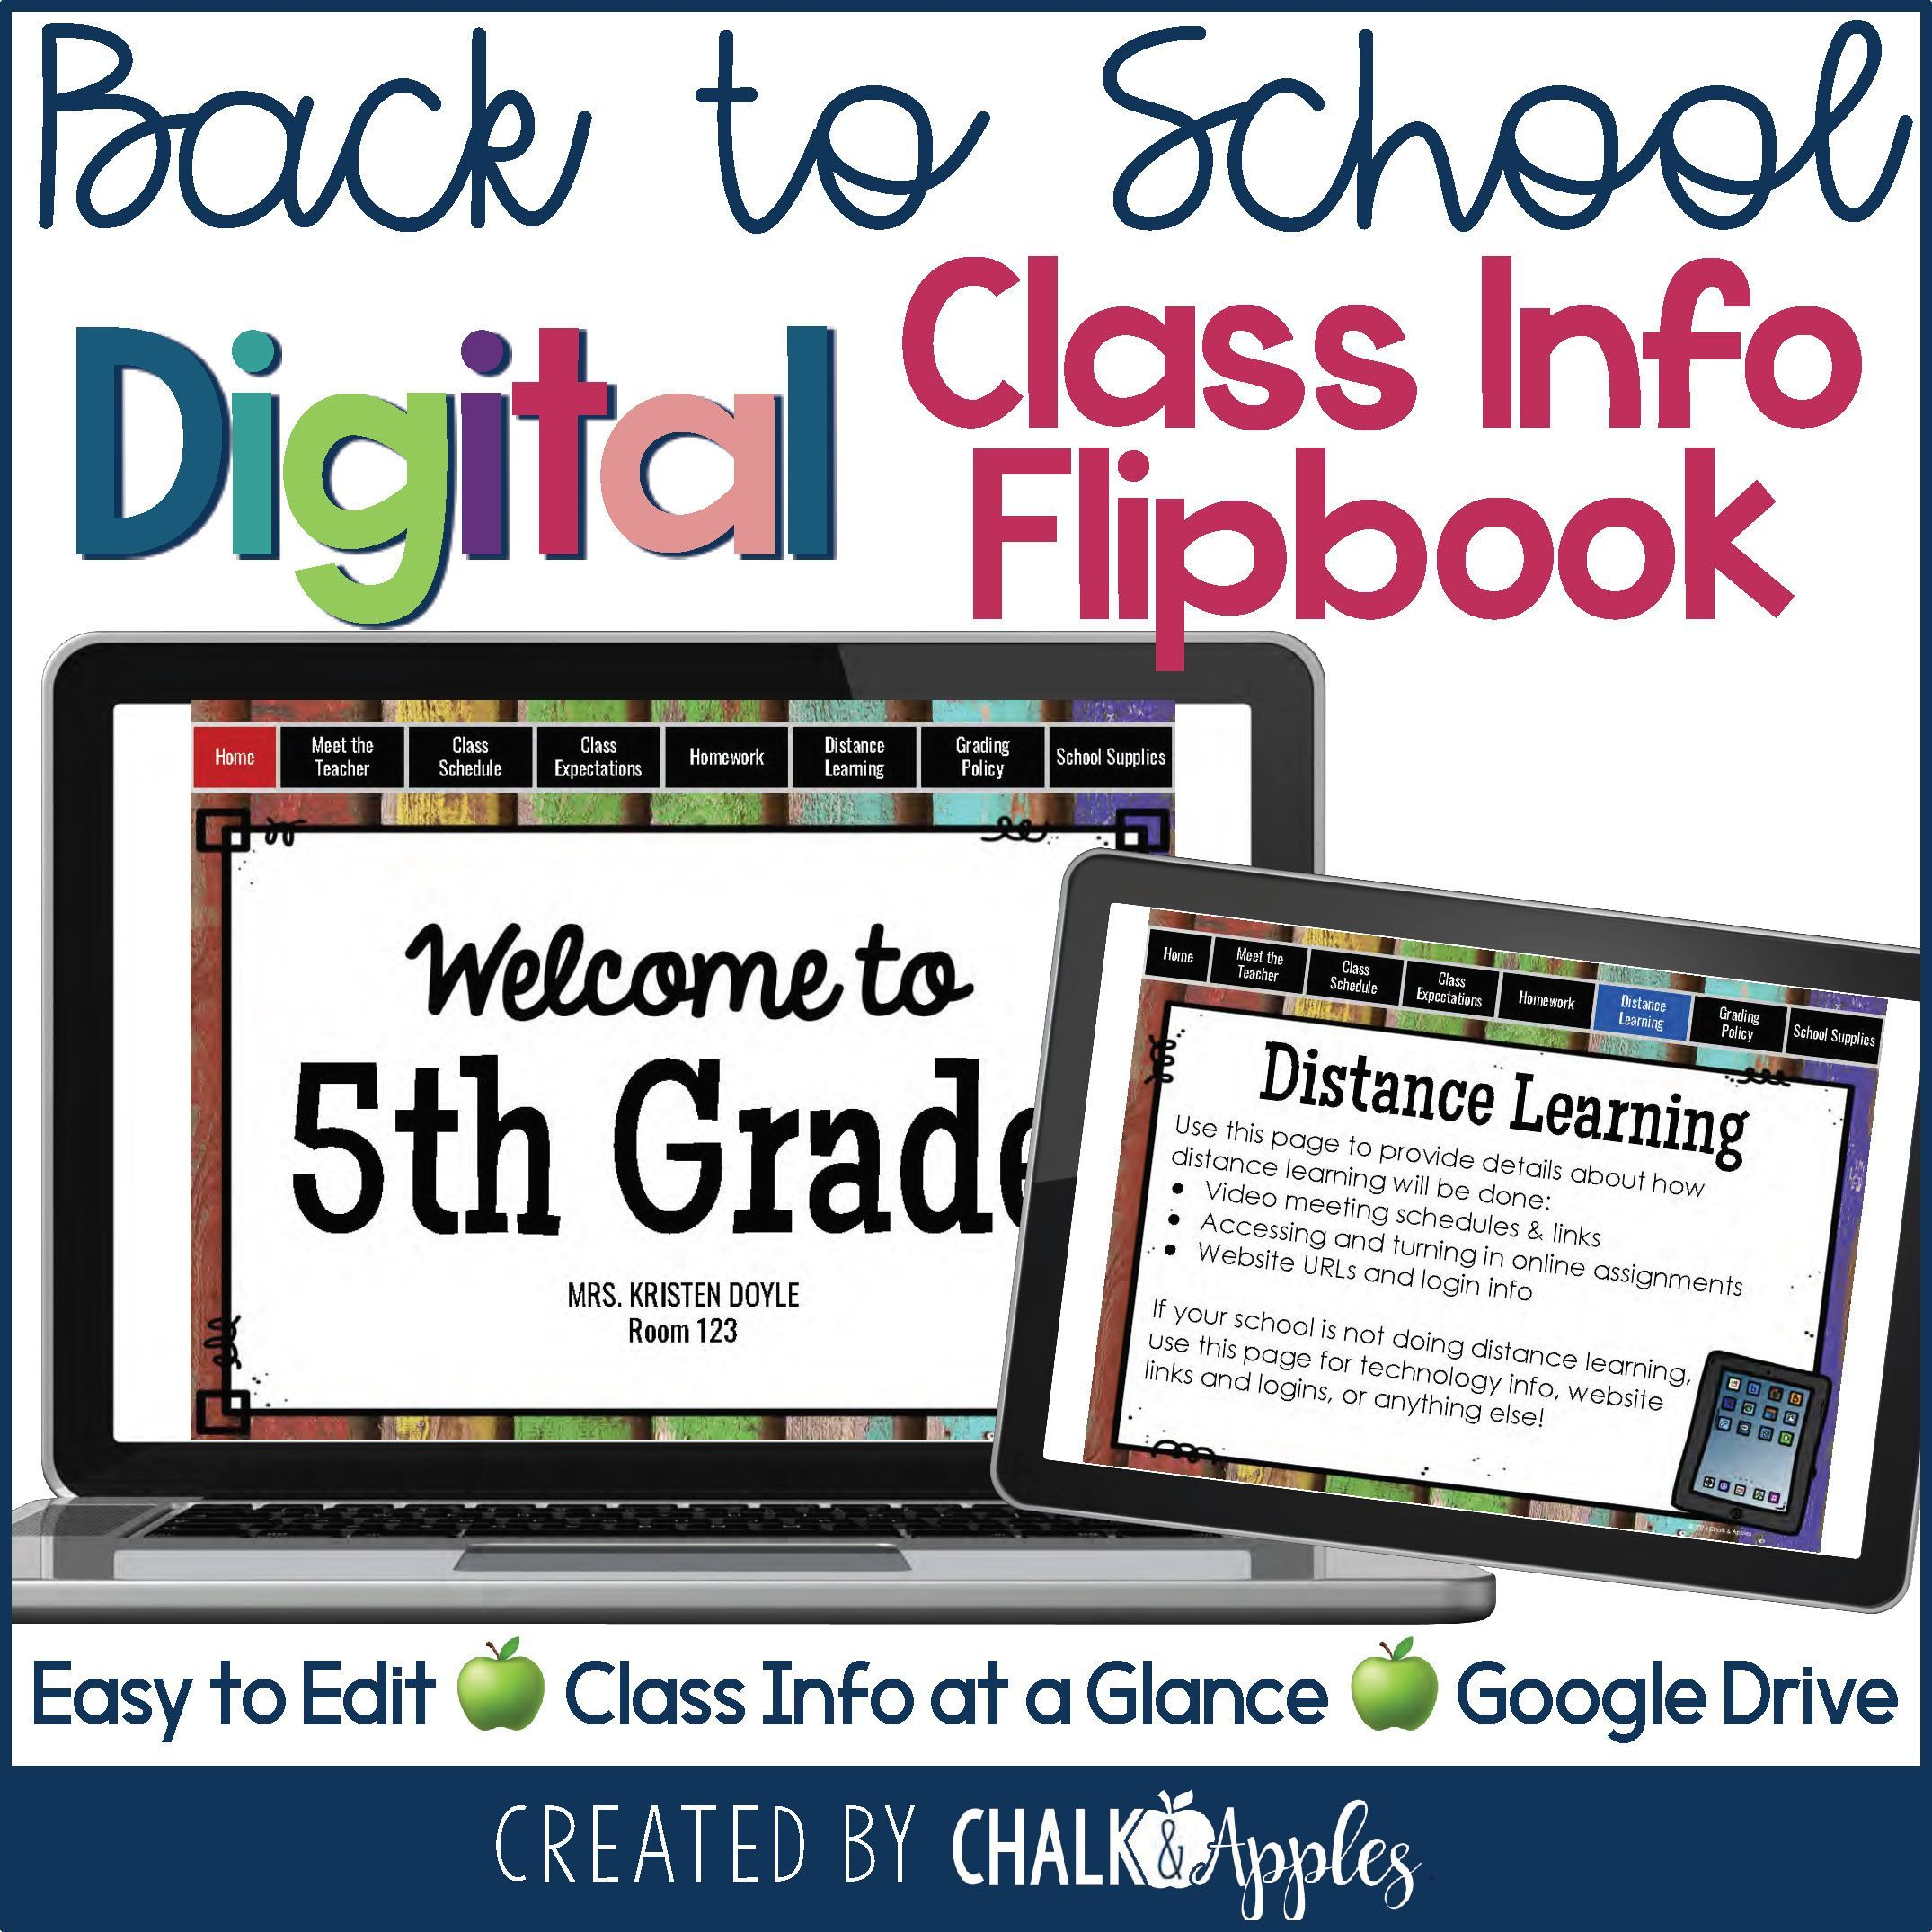 Pin on Back to School ideas and activities